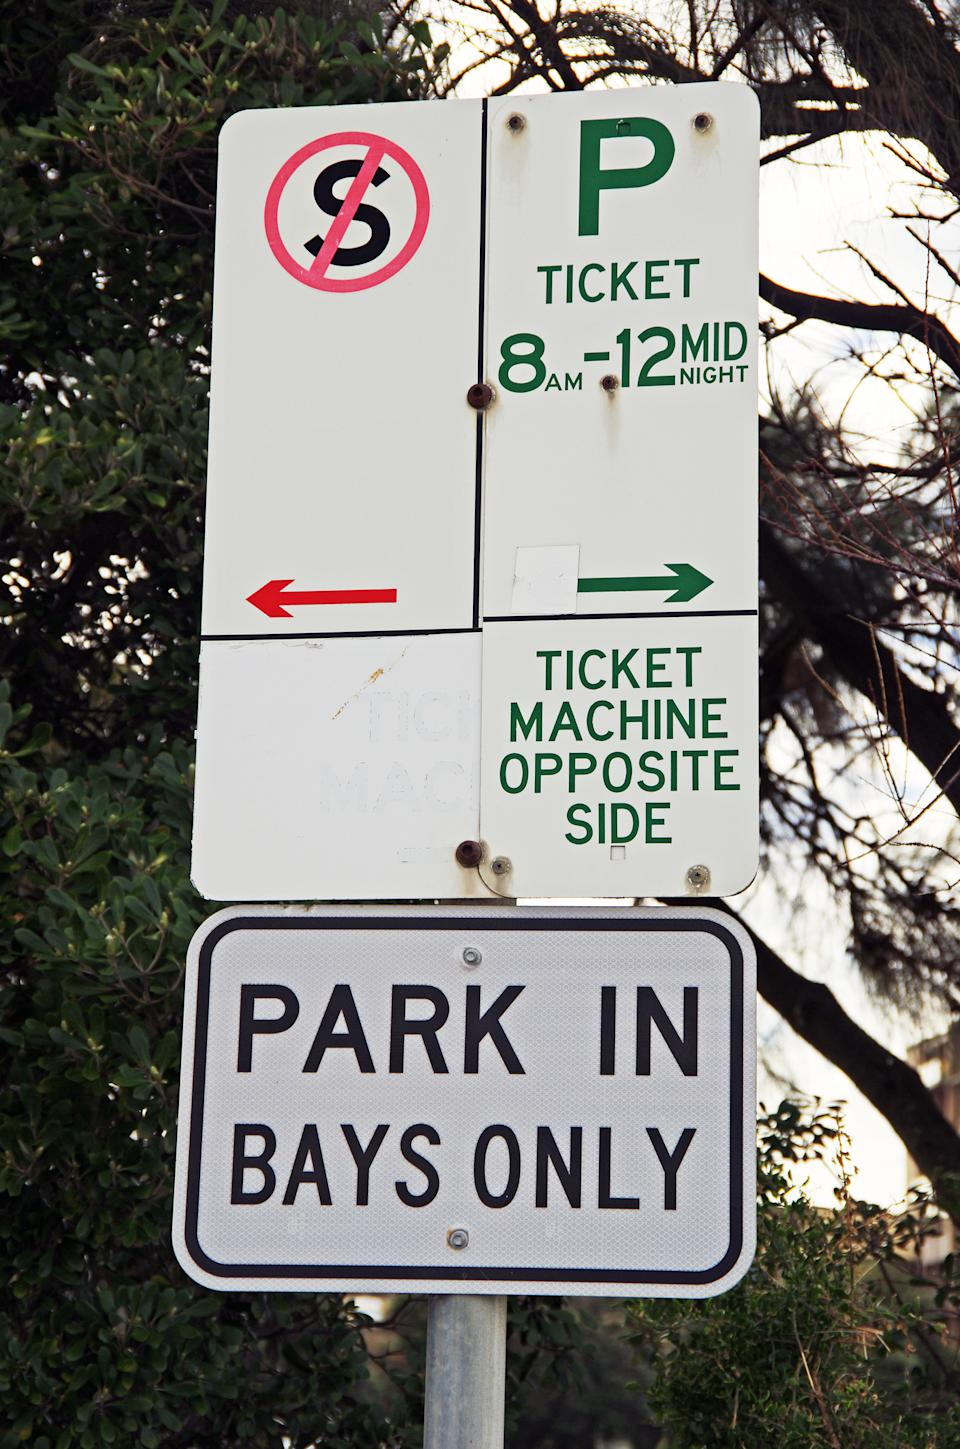 Pictured is a confusing parking sign.